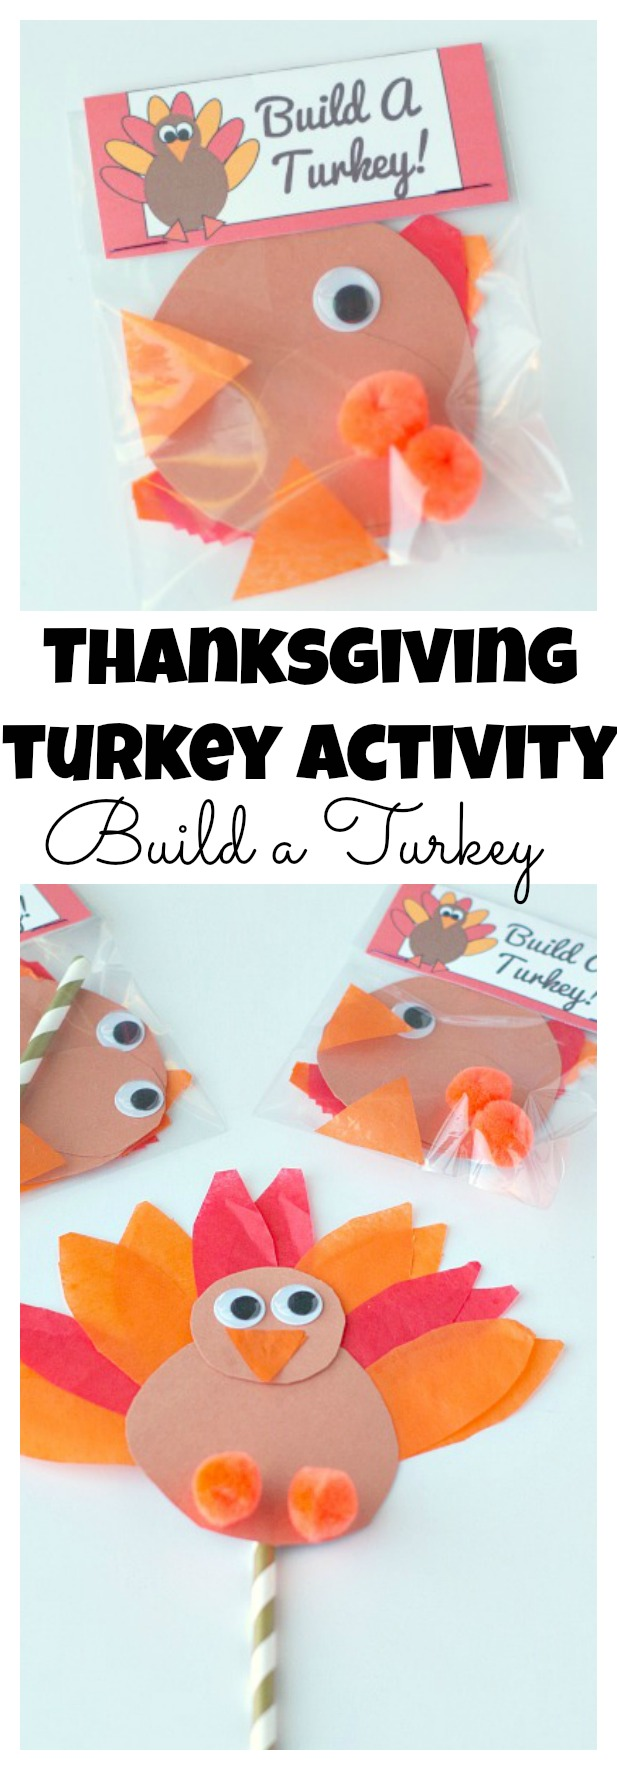 Thanksgiving Turkey Activity, build a turkey!